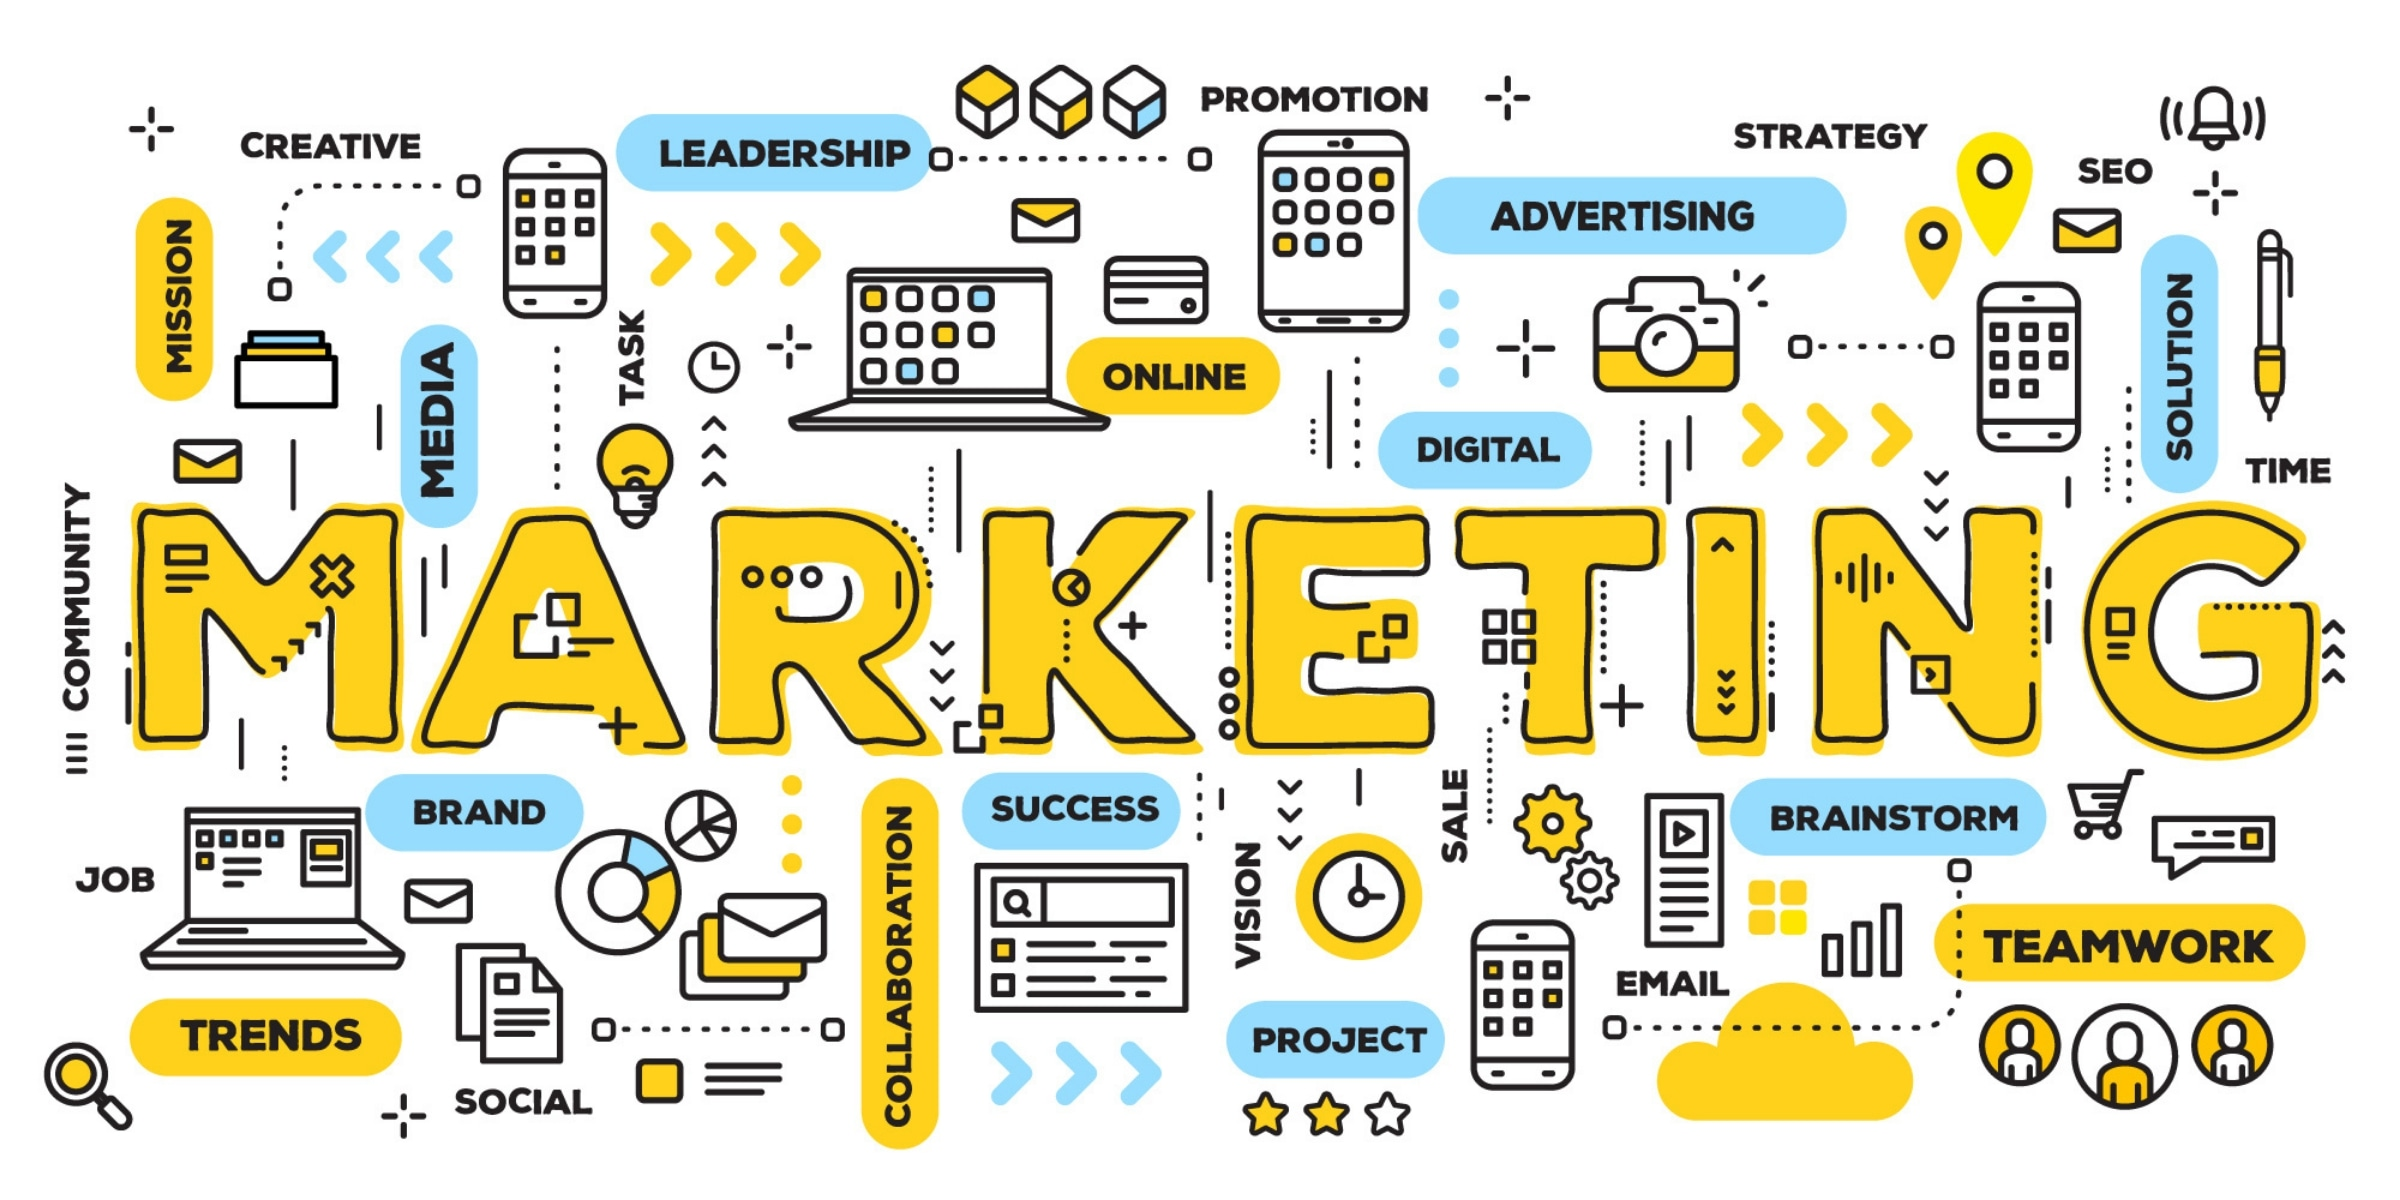 Multiple icons of marketing items such as: advertising, digital, trends, media...etc.